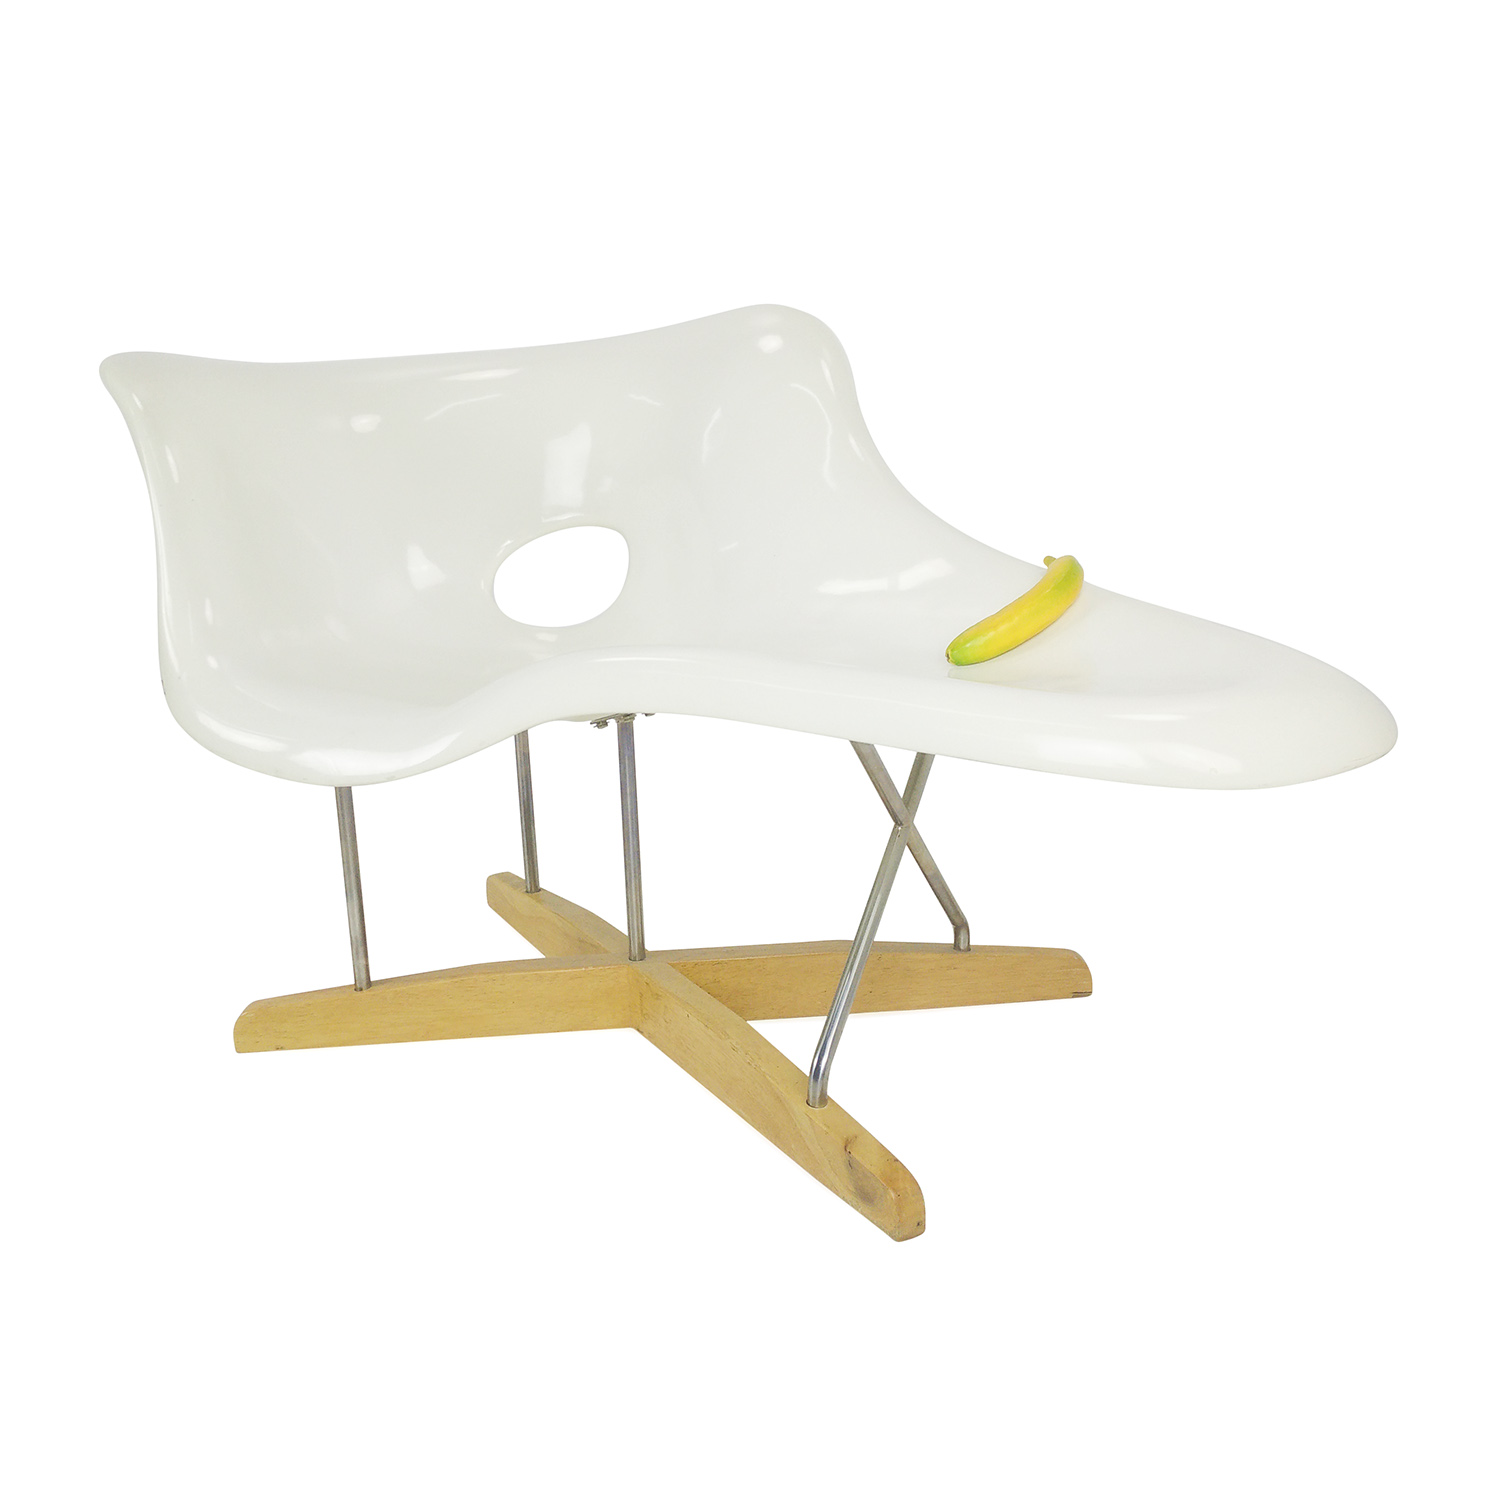 63 off eames replica of la chaise la chaise replica for Chaise coque eames